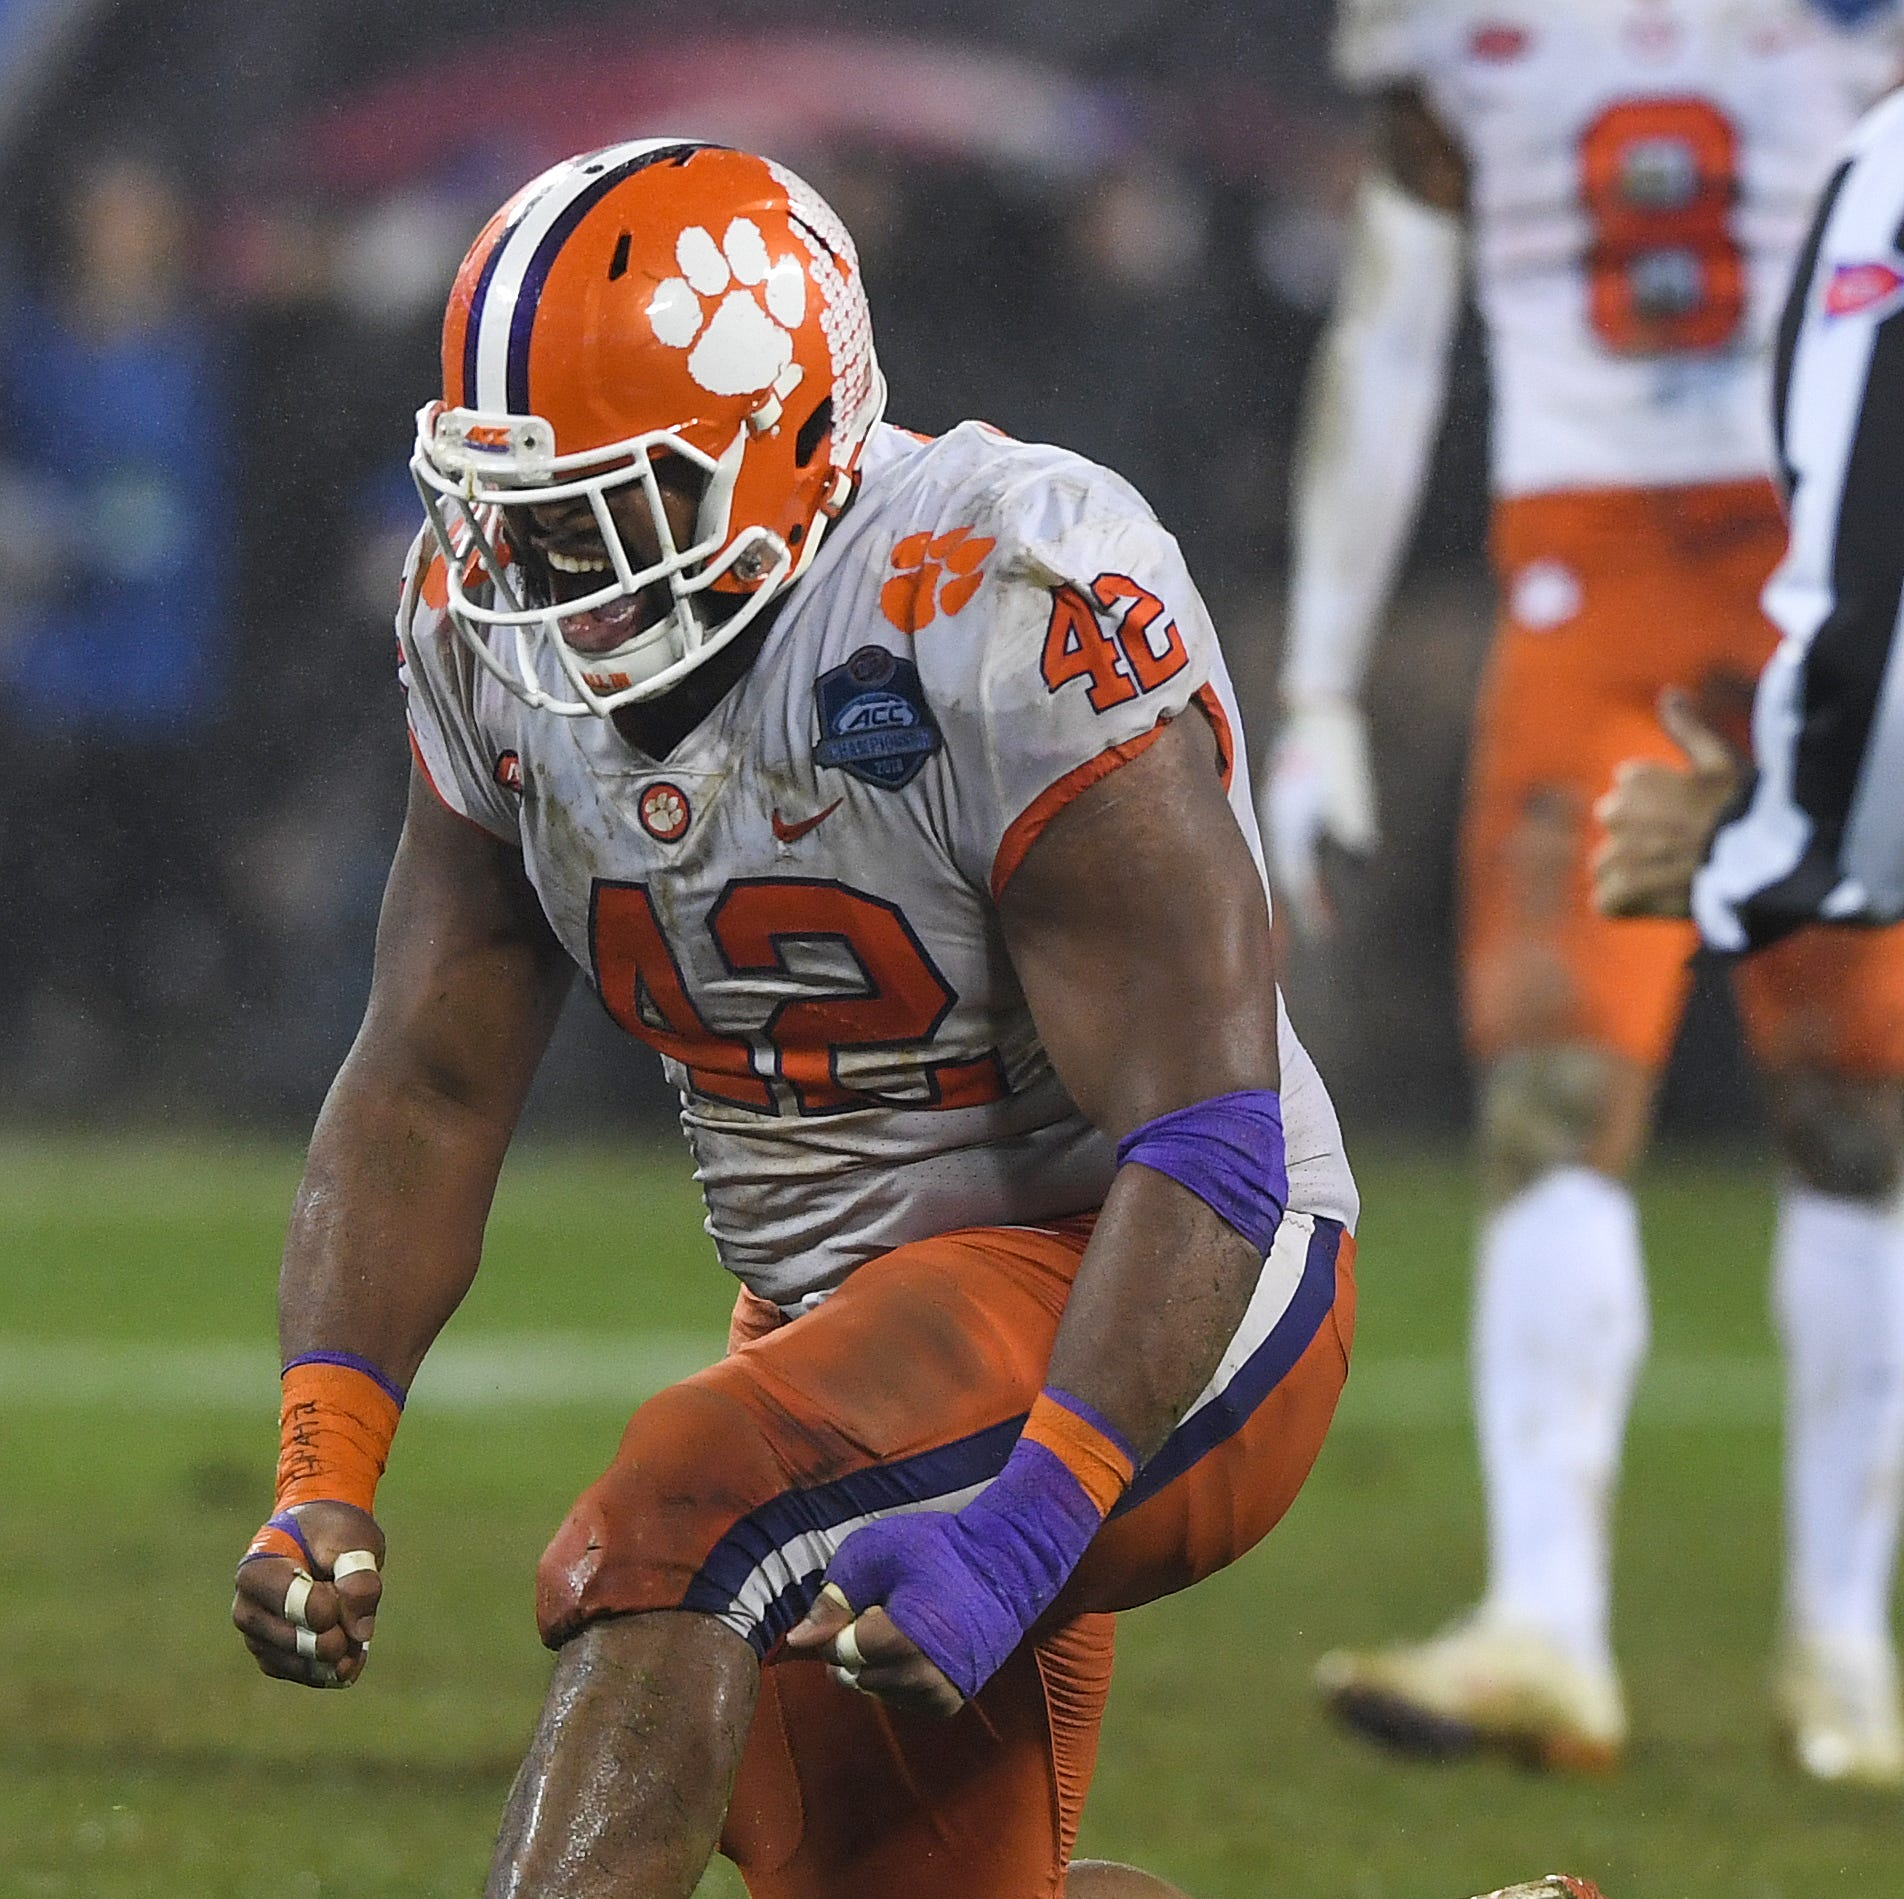 Clemson football's defensive tackle Christian Wilkins recipient of 'Academic Heisman'